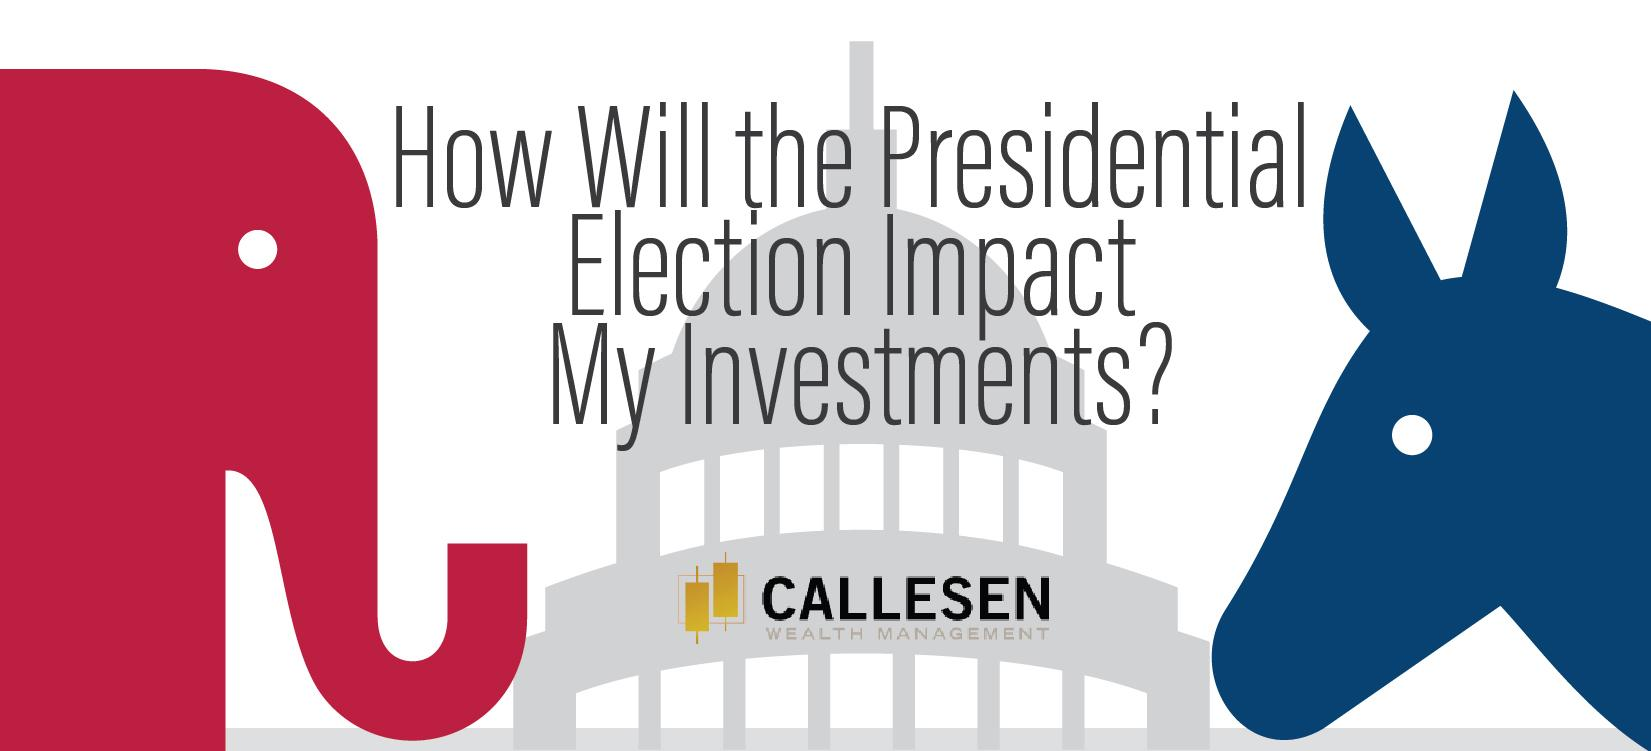 """How Will the Presidential Election Impact My Investments?"" Thumbnail"